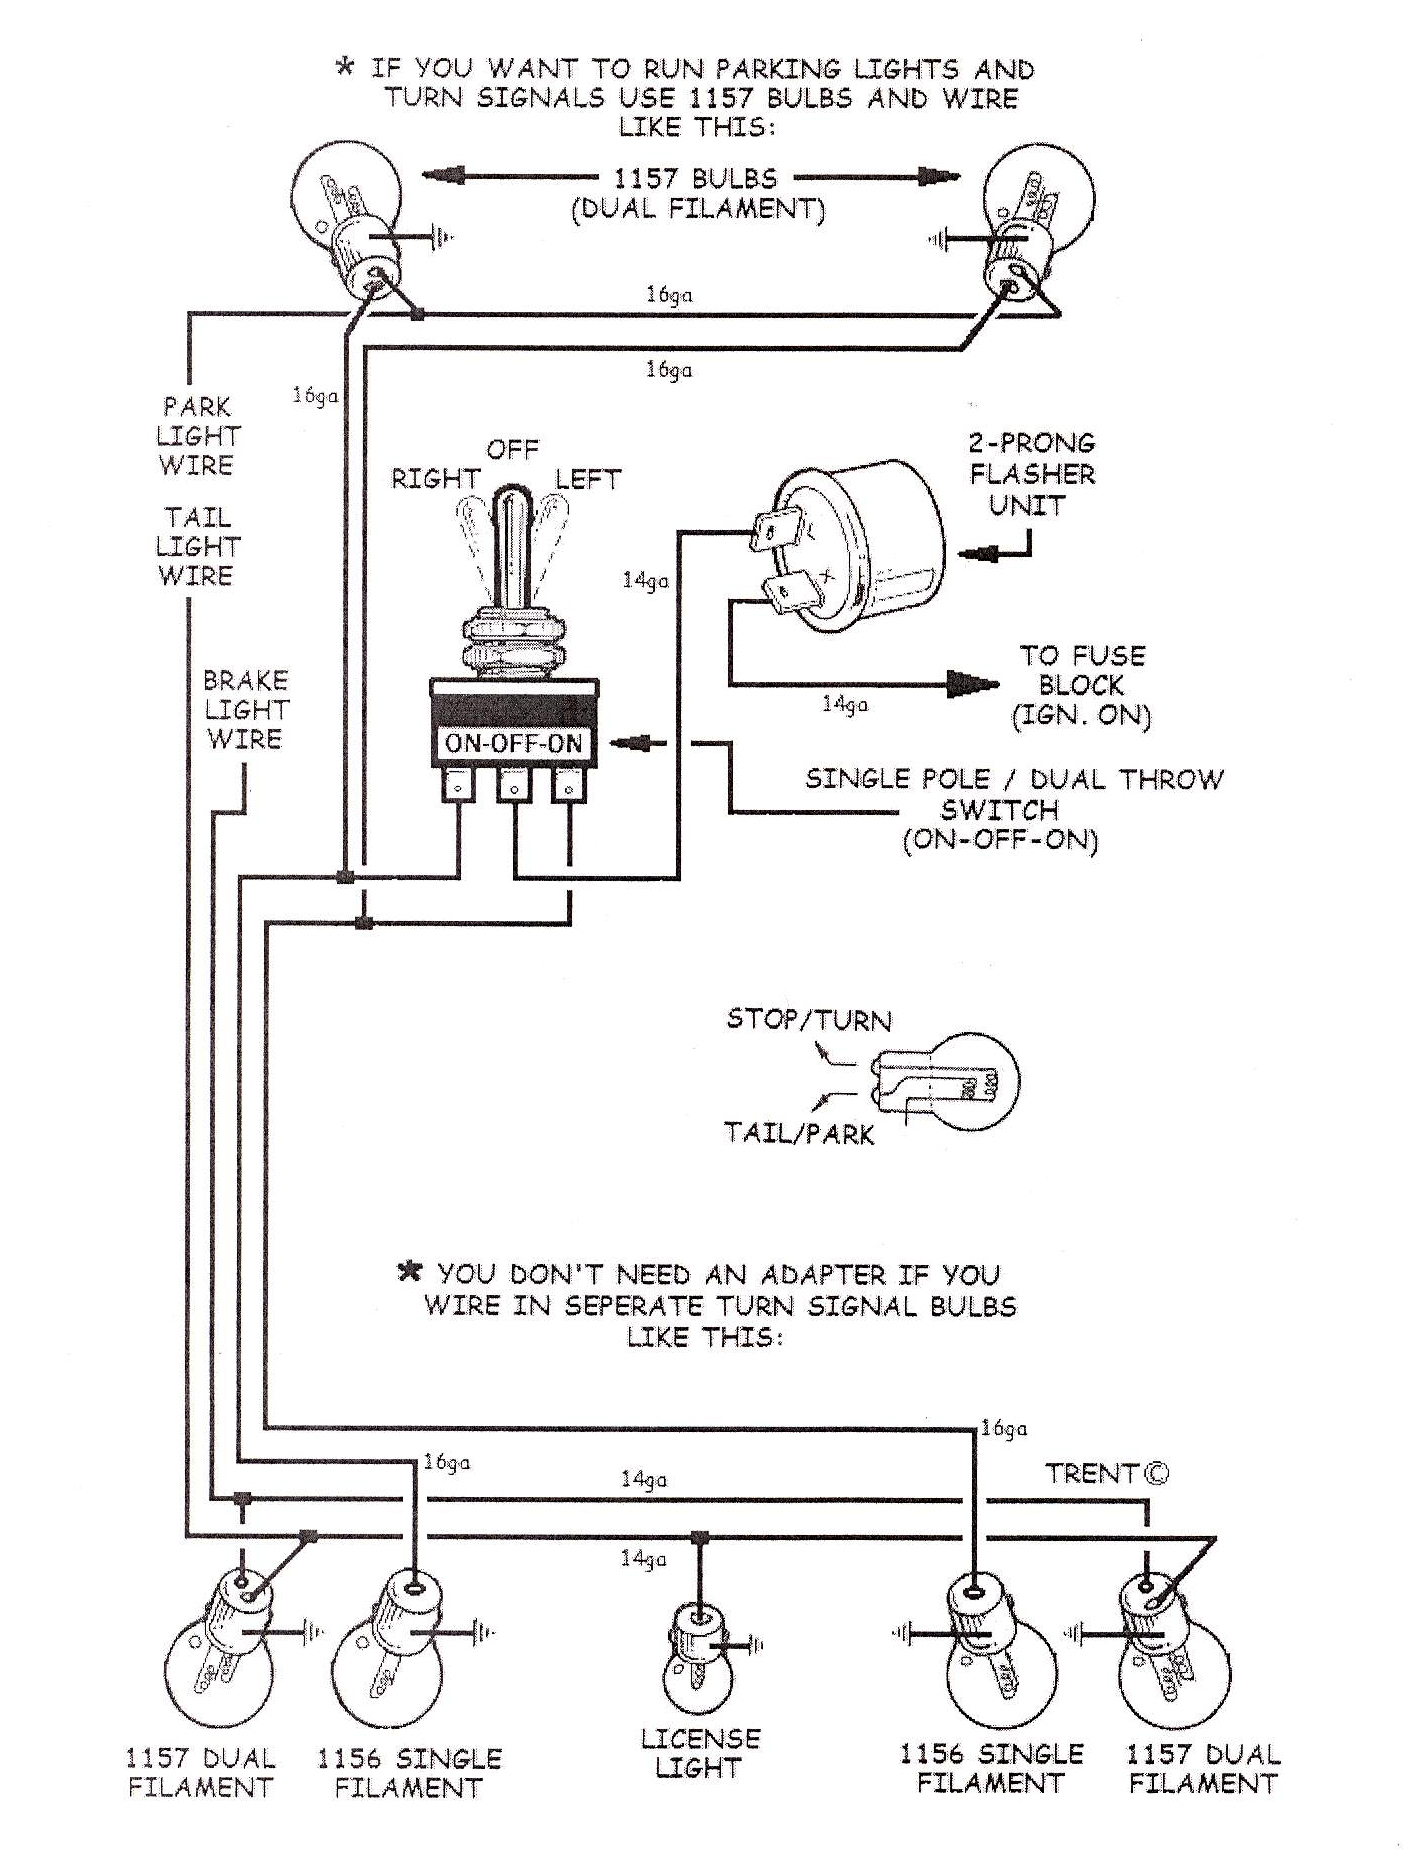 turnsignalwiringdiagram tech tips gm steering column wiring connectors at gsmportal.co